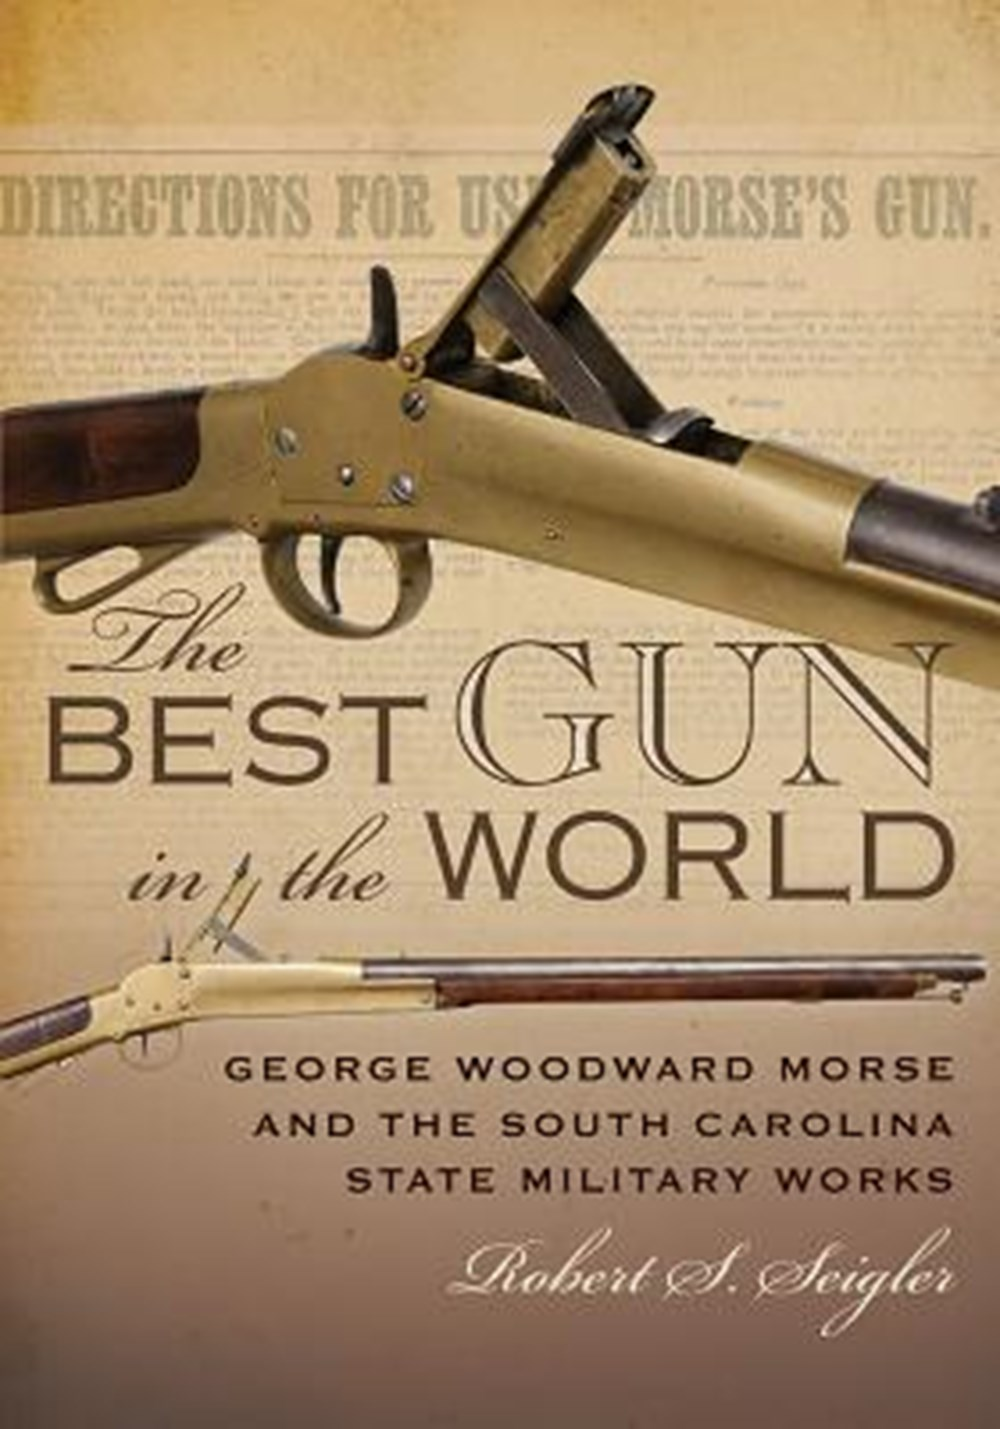 Best Gun in the World George Woodward Morse and the South Carolina State Military Works